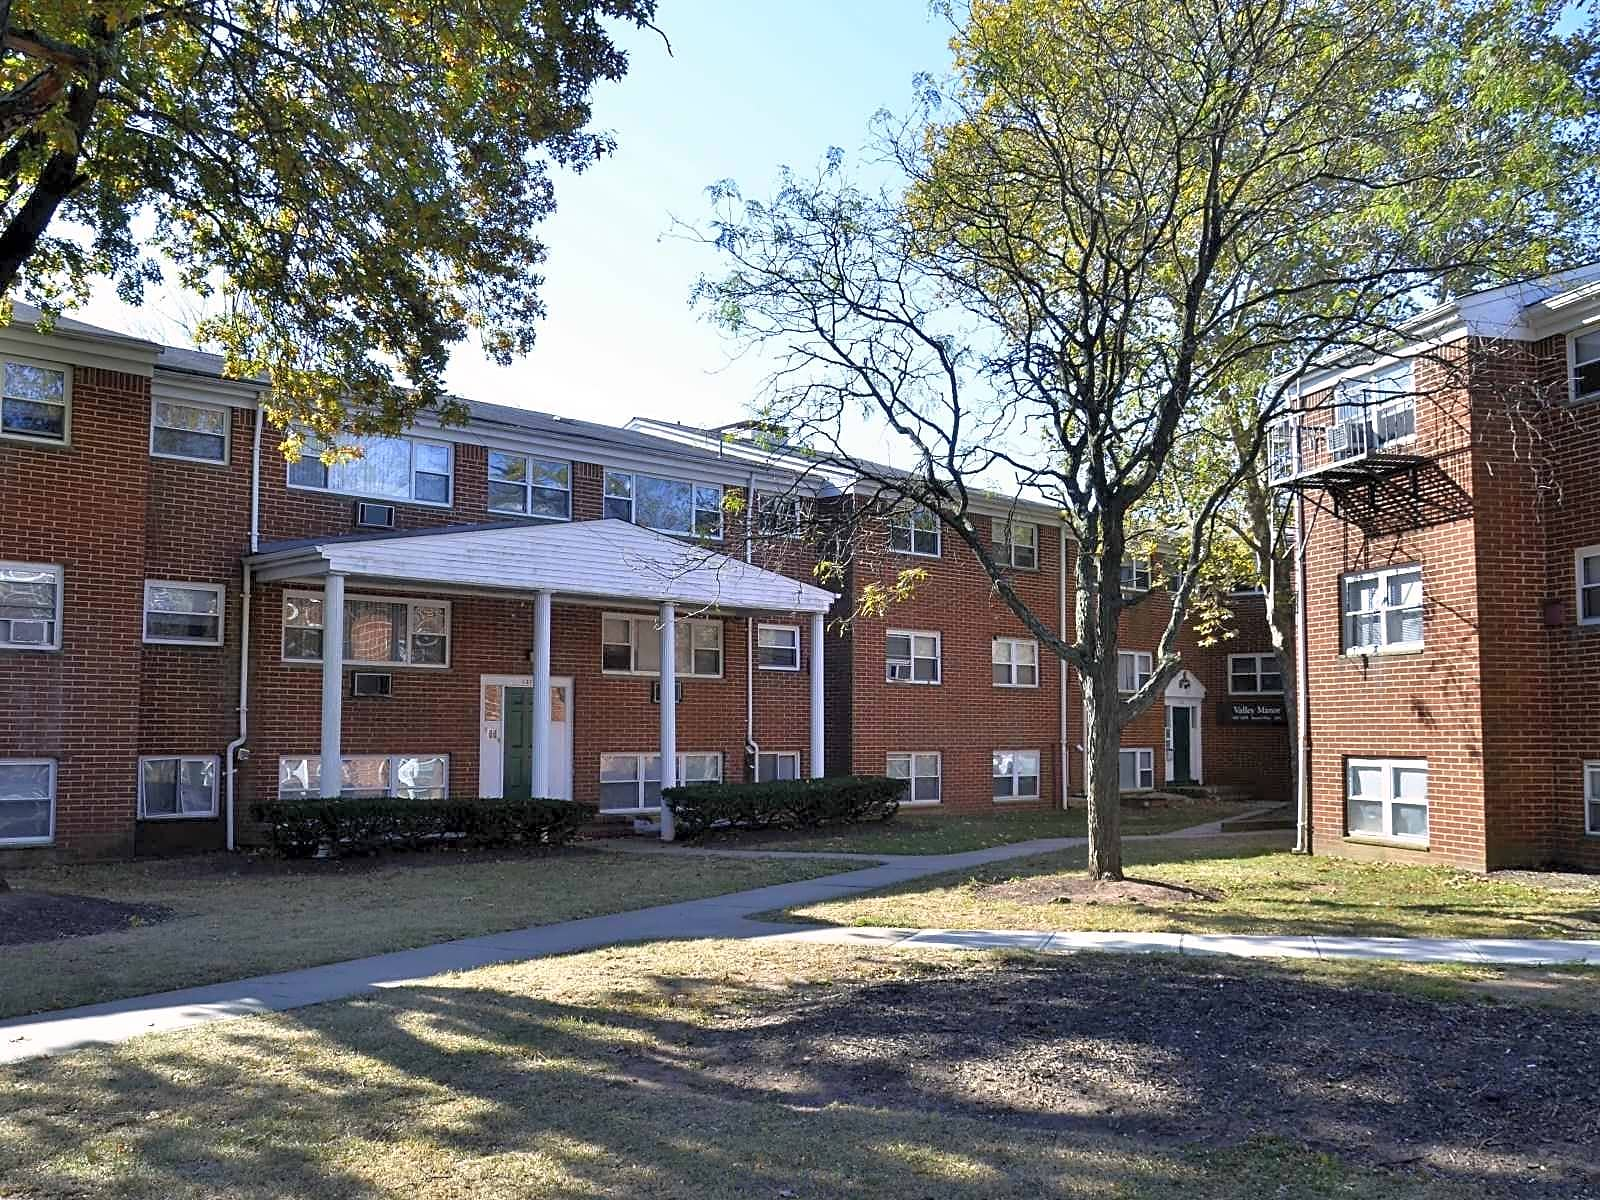 Valley manor luxury apartments edison nj 08817 - 2 bedroom apartments in linden nj for 950 ...